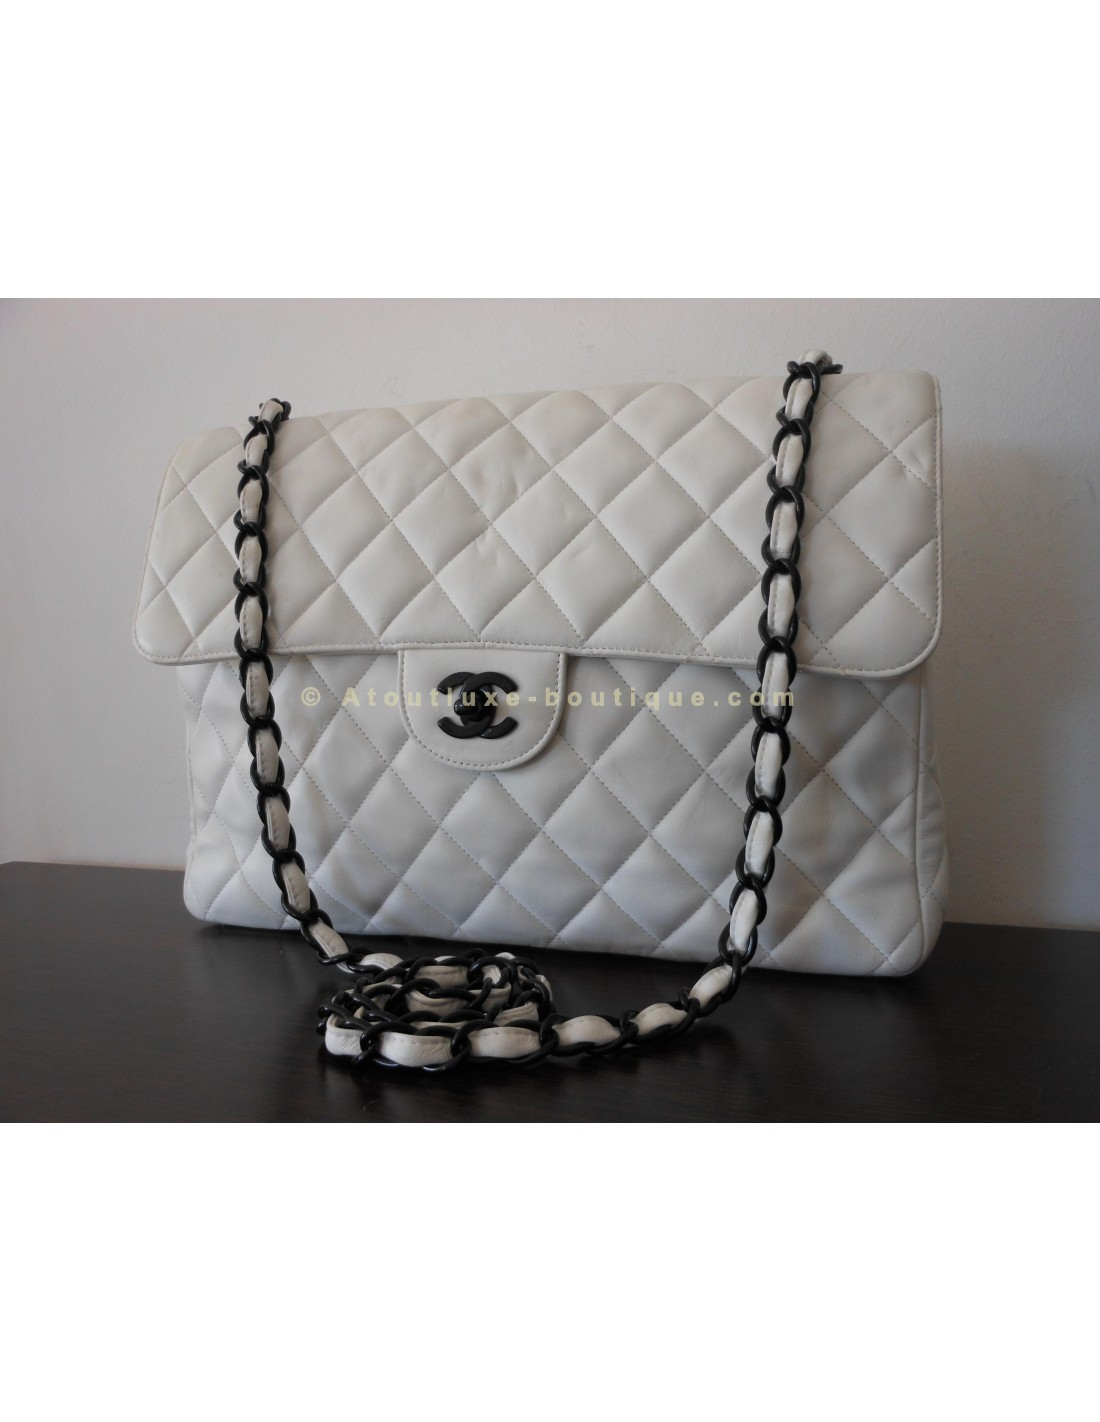 Sac chanel mademoiselle blanc gm atoutluxe boutique for Sac chanel interieur